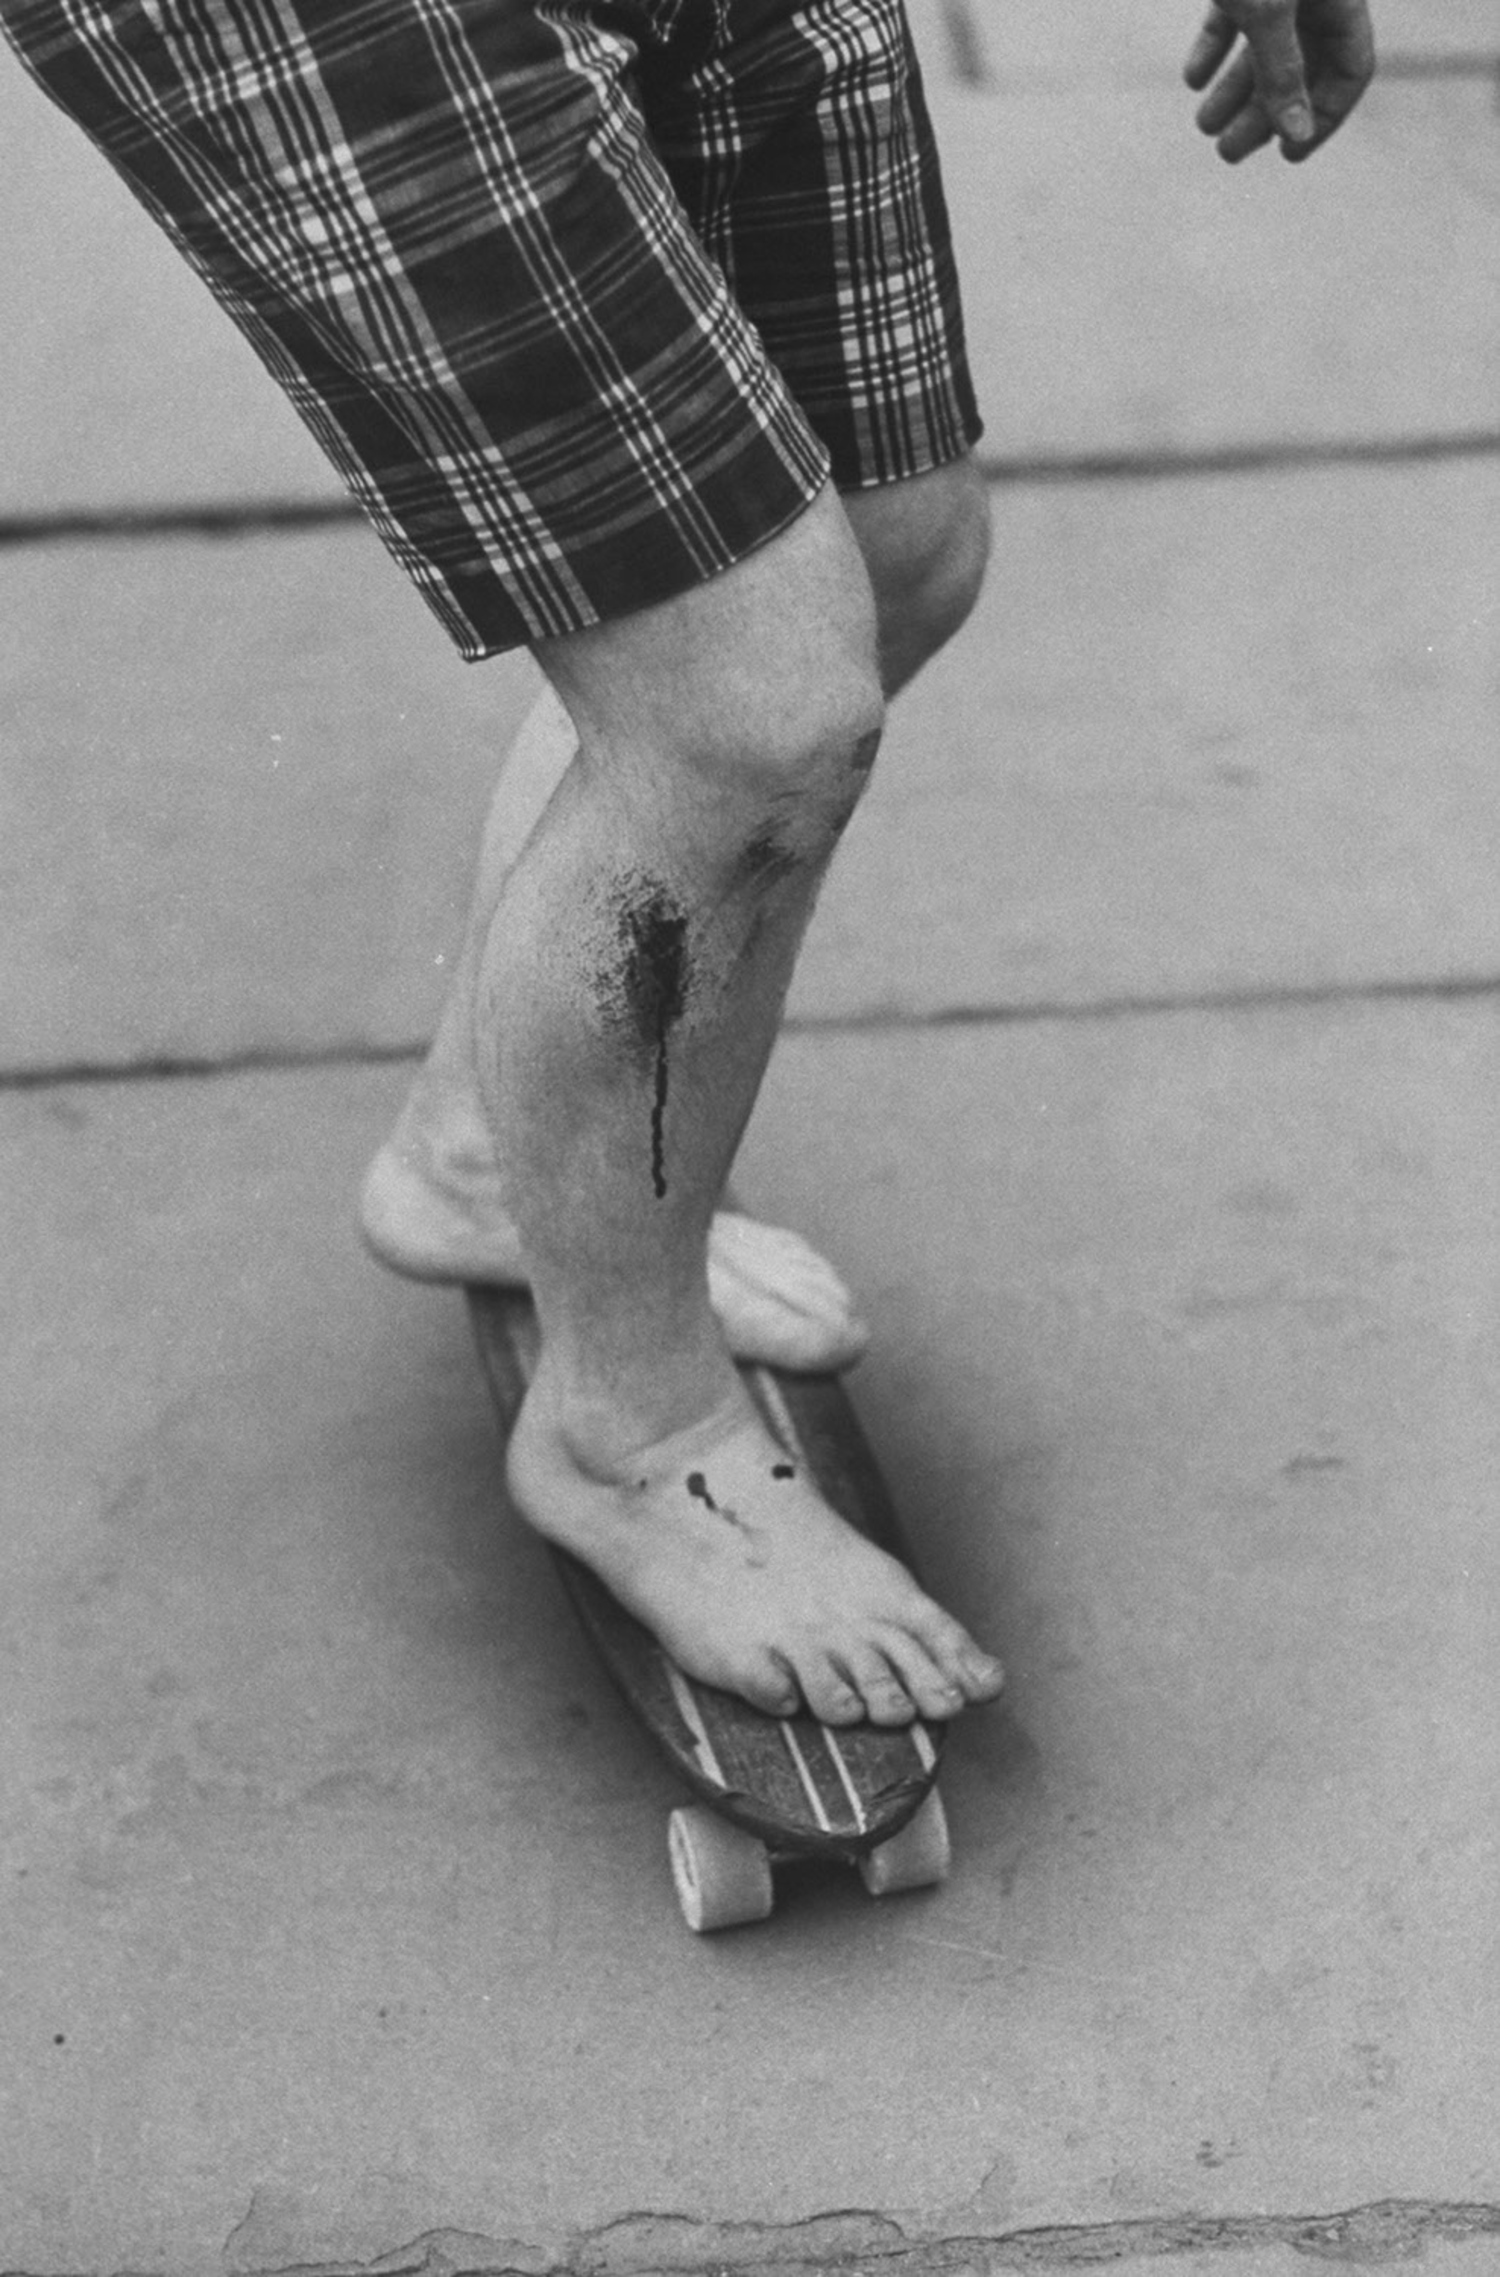 A barefooted skater shows off some fresh road rash.